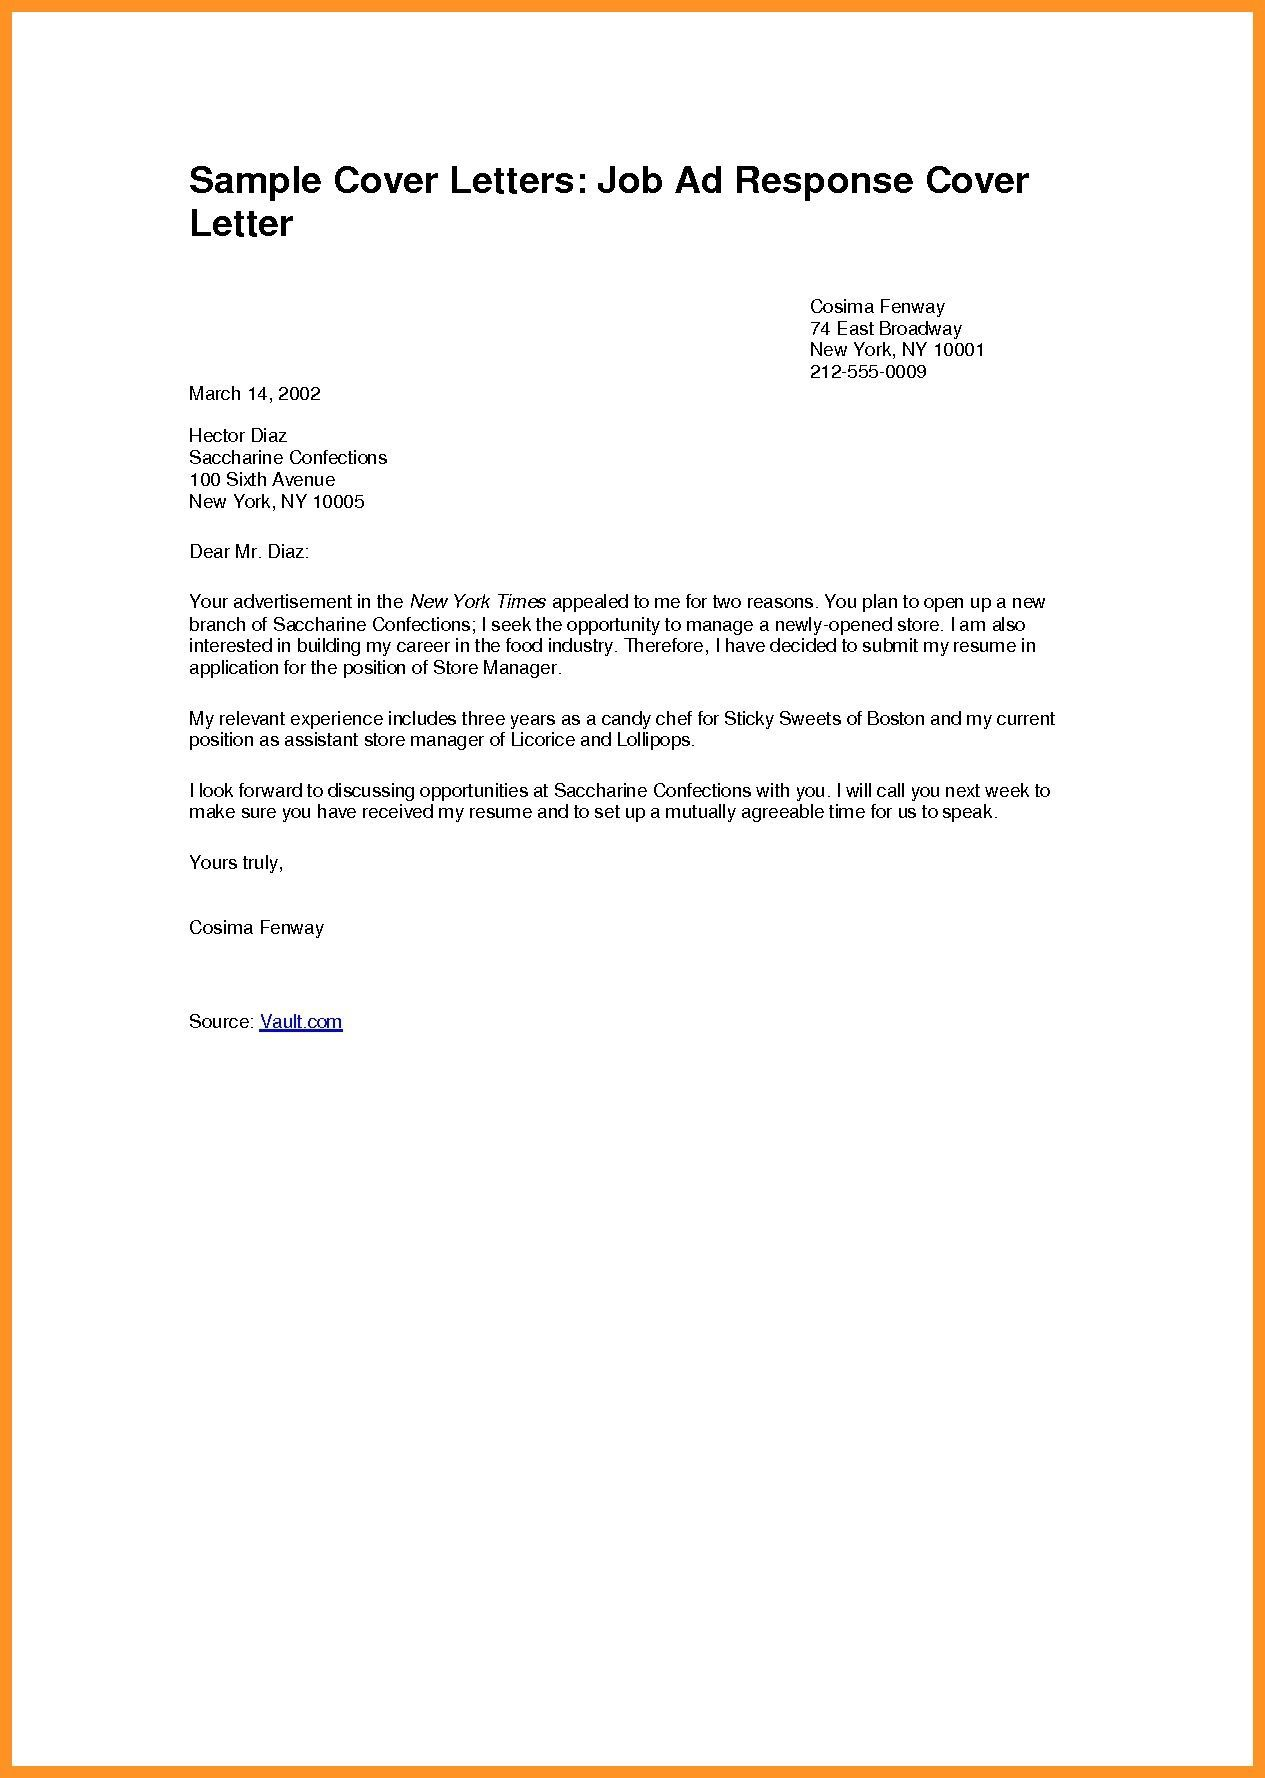 Conditional Offer Letter Sample